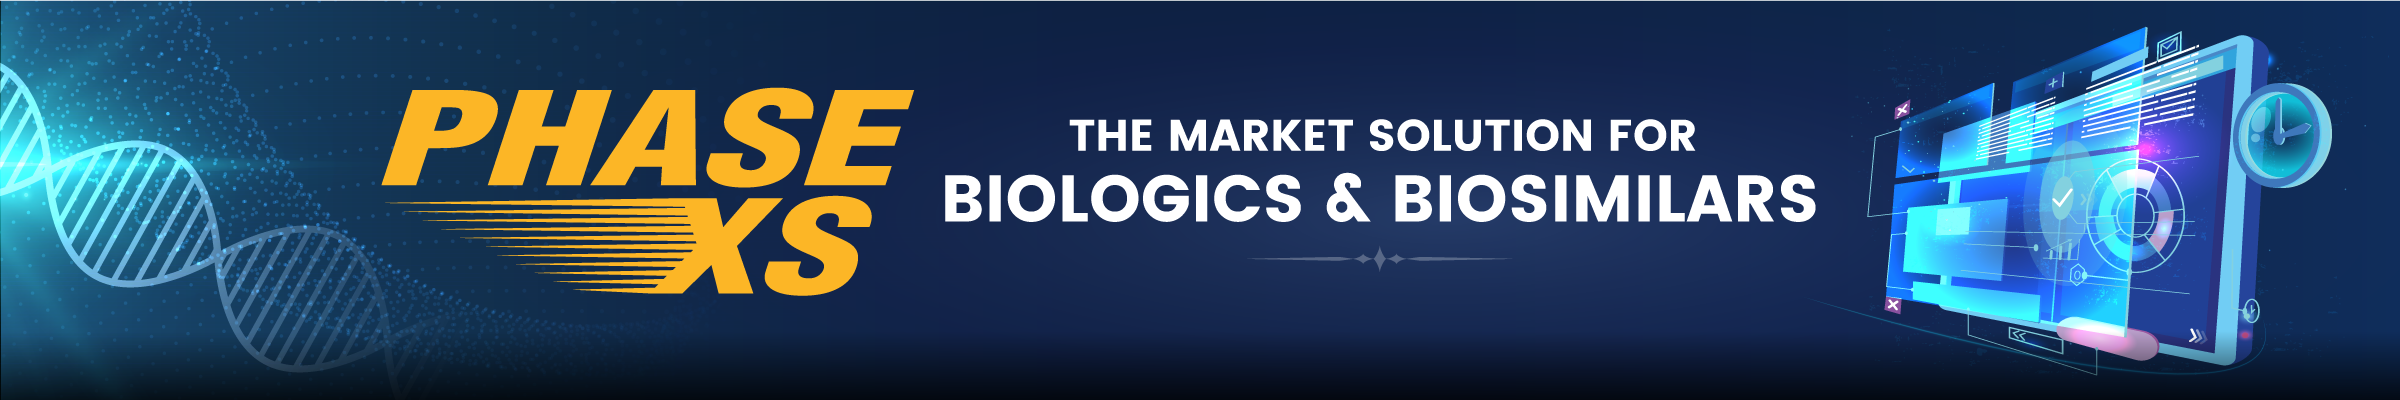 Phase-Xs | Biologics & Biosimilars | Coherent Market Insights